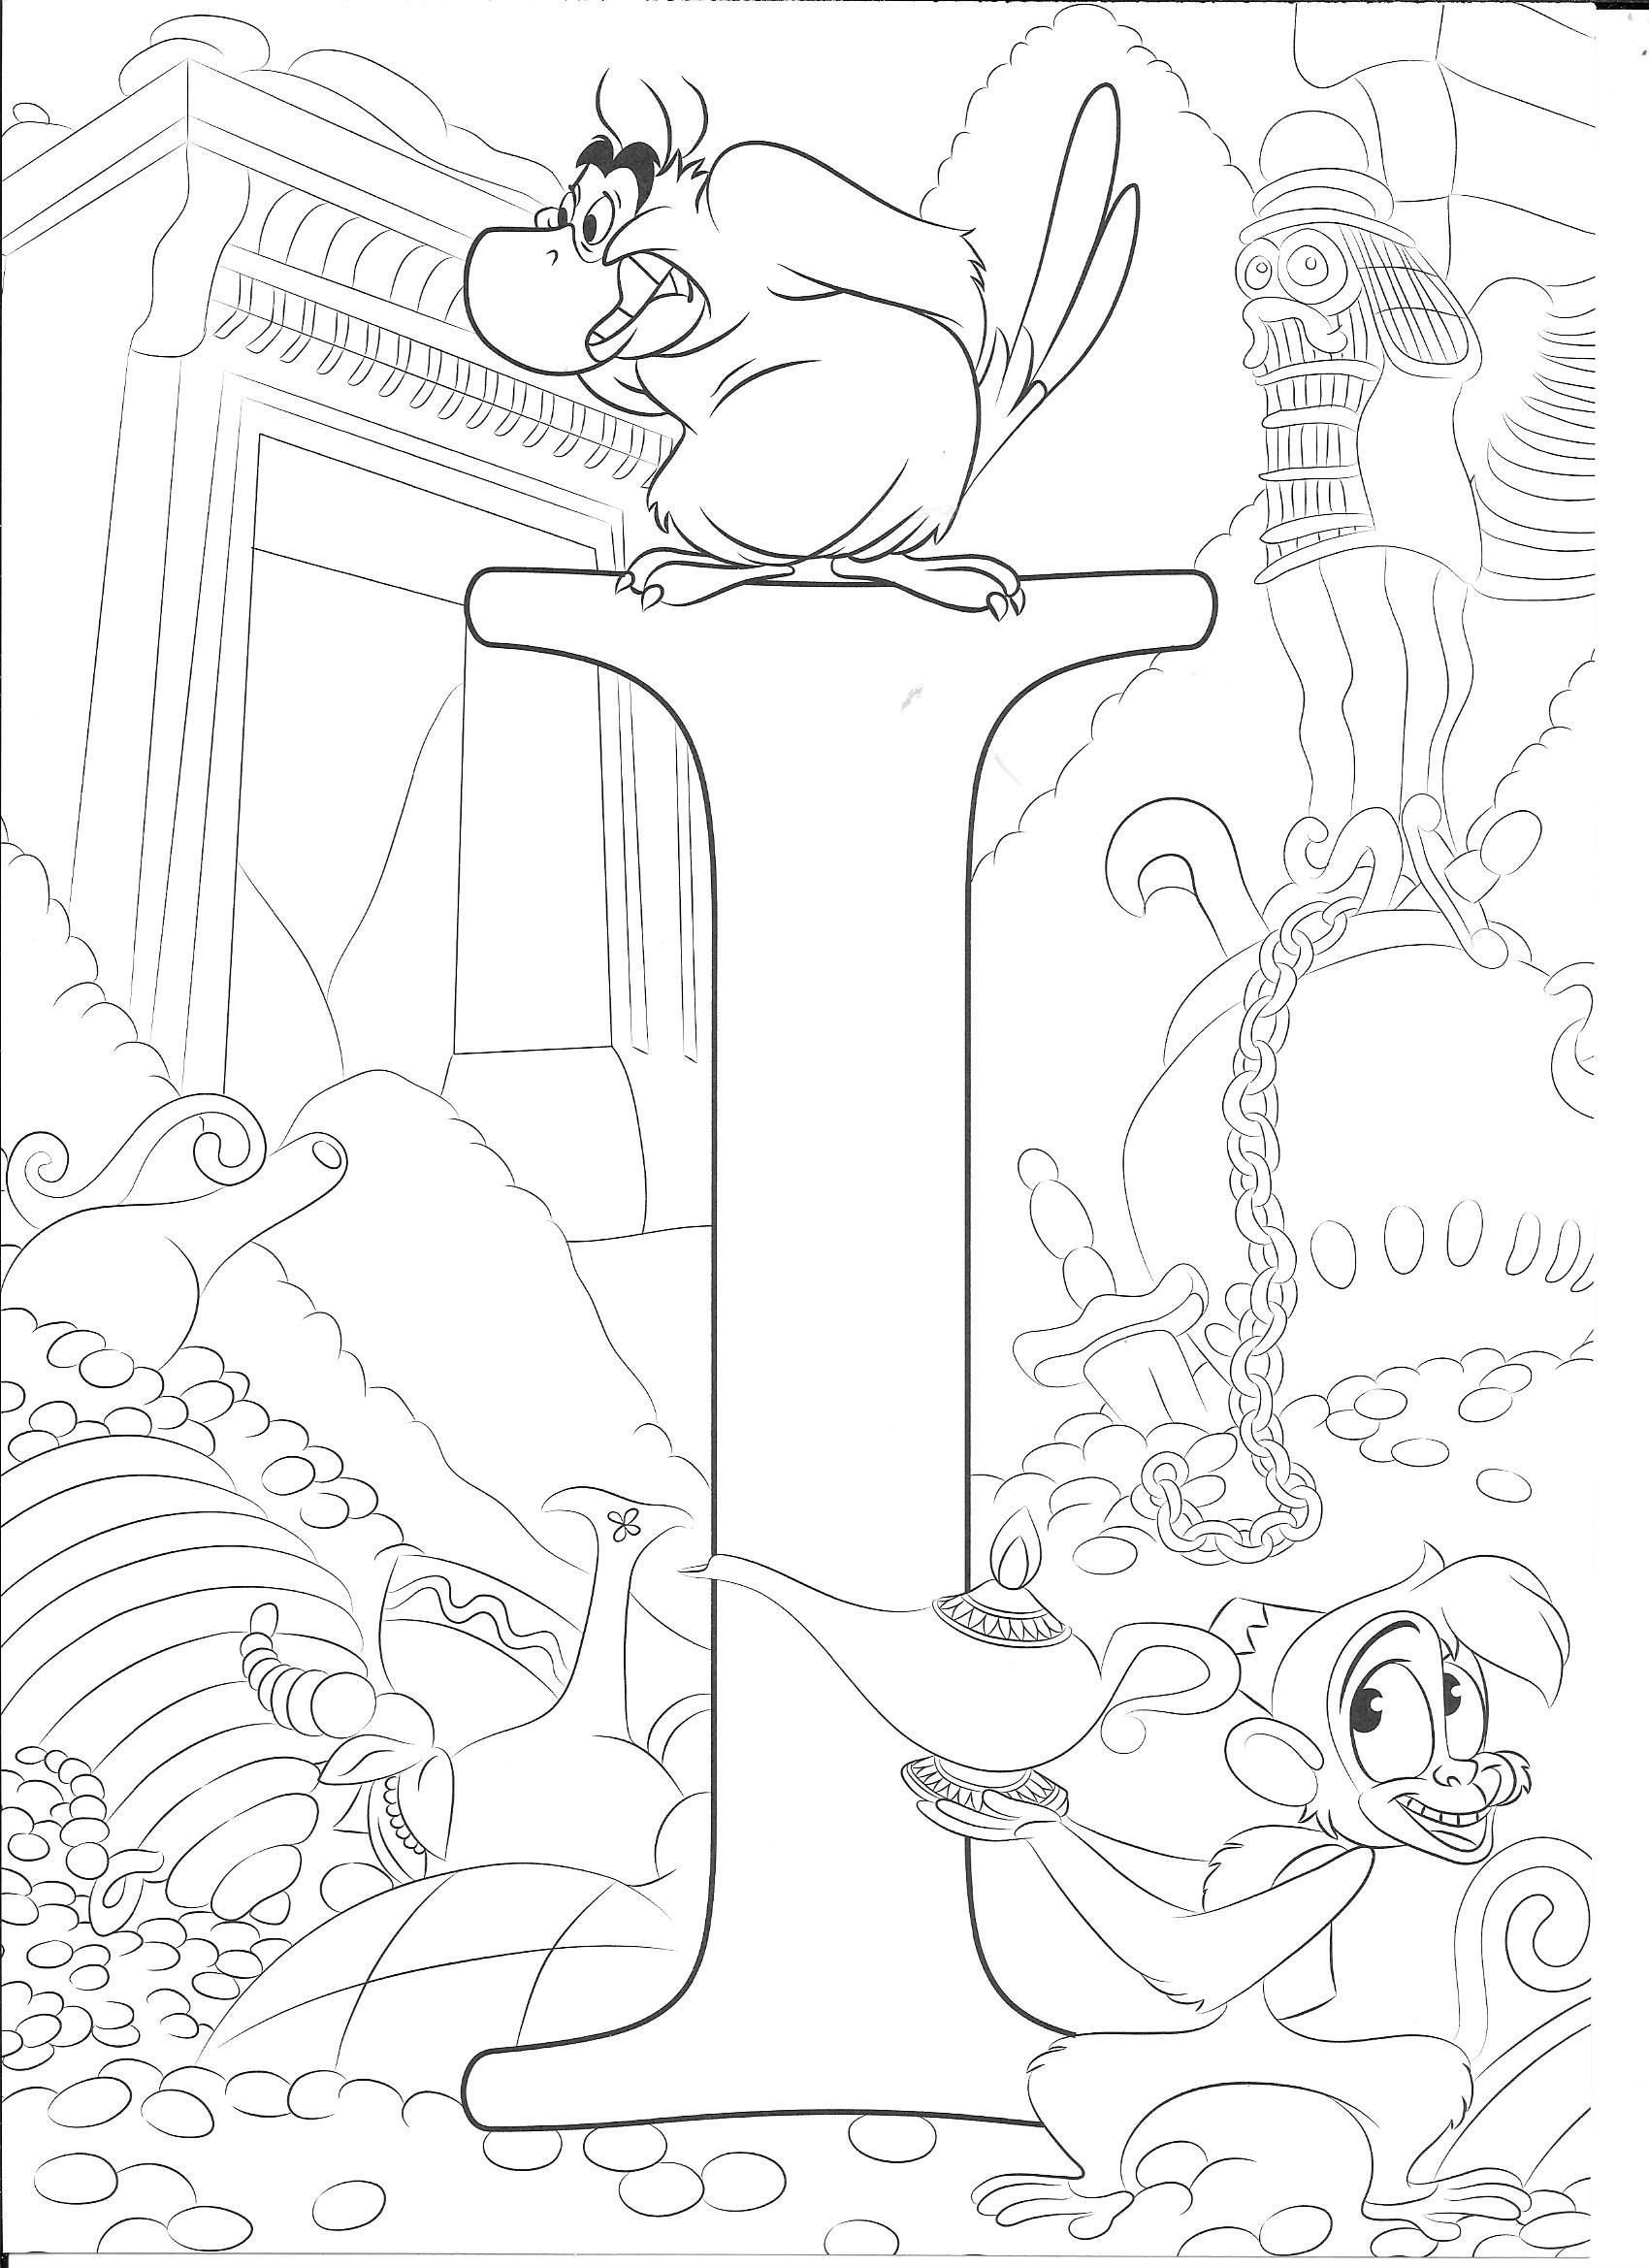 Princess Disney Coloring Pages Awesome Disney Coloring Pages Disney Princess Coloring Pages Princess Coloring Princess Coloring Pages